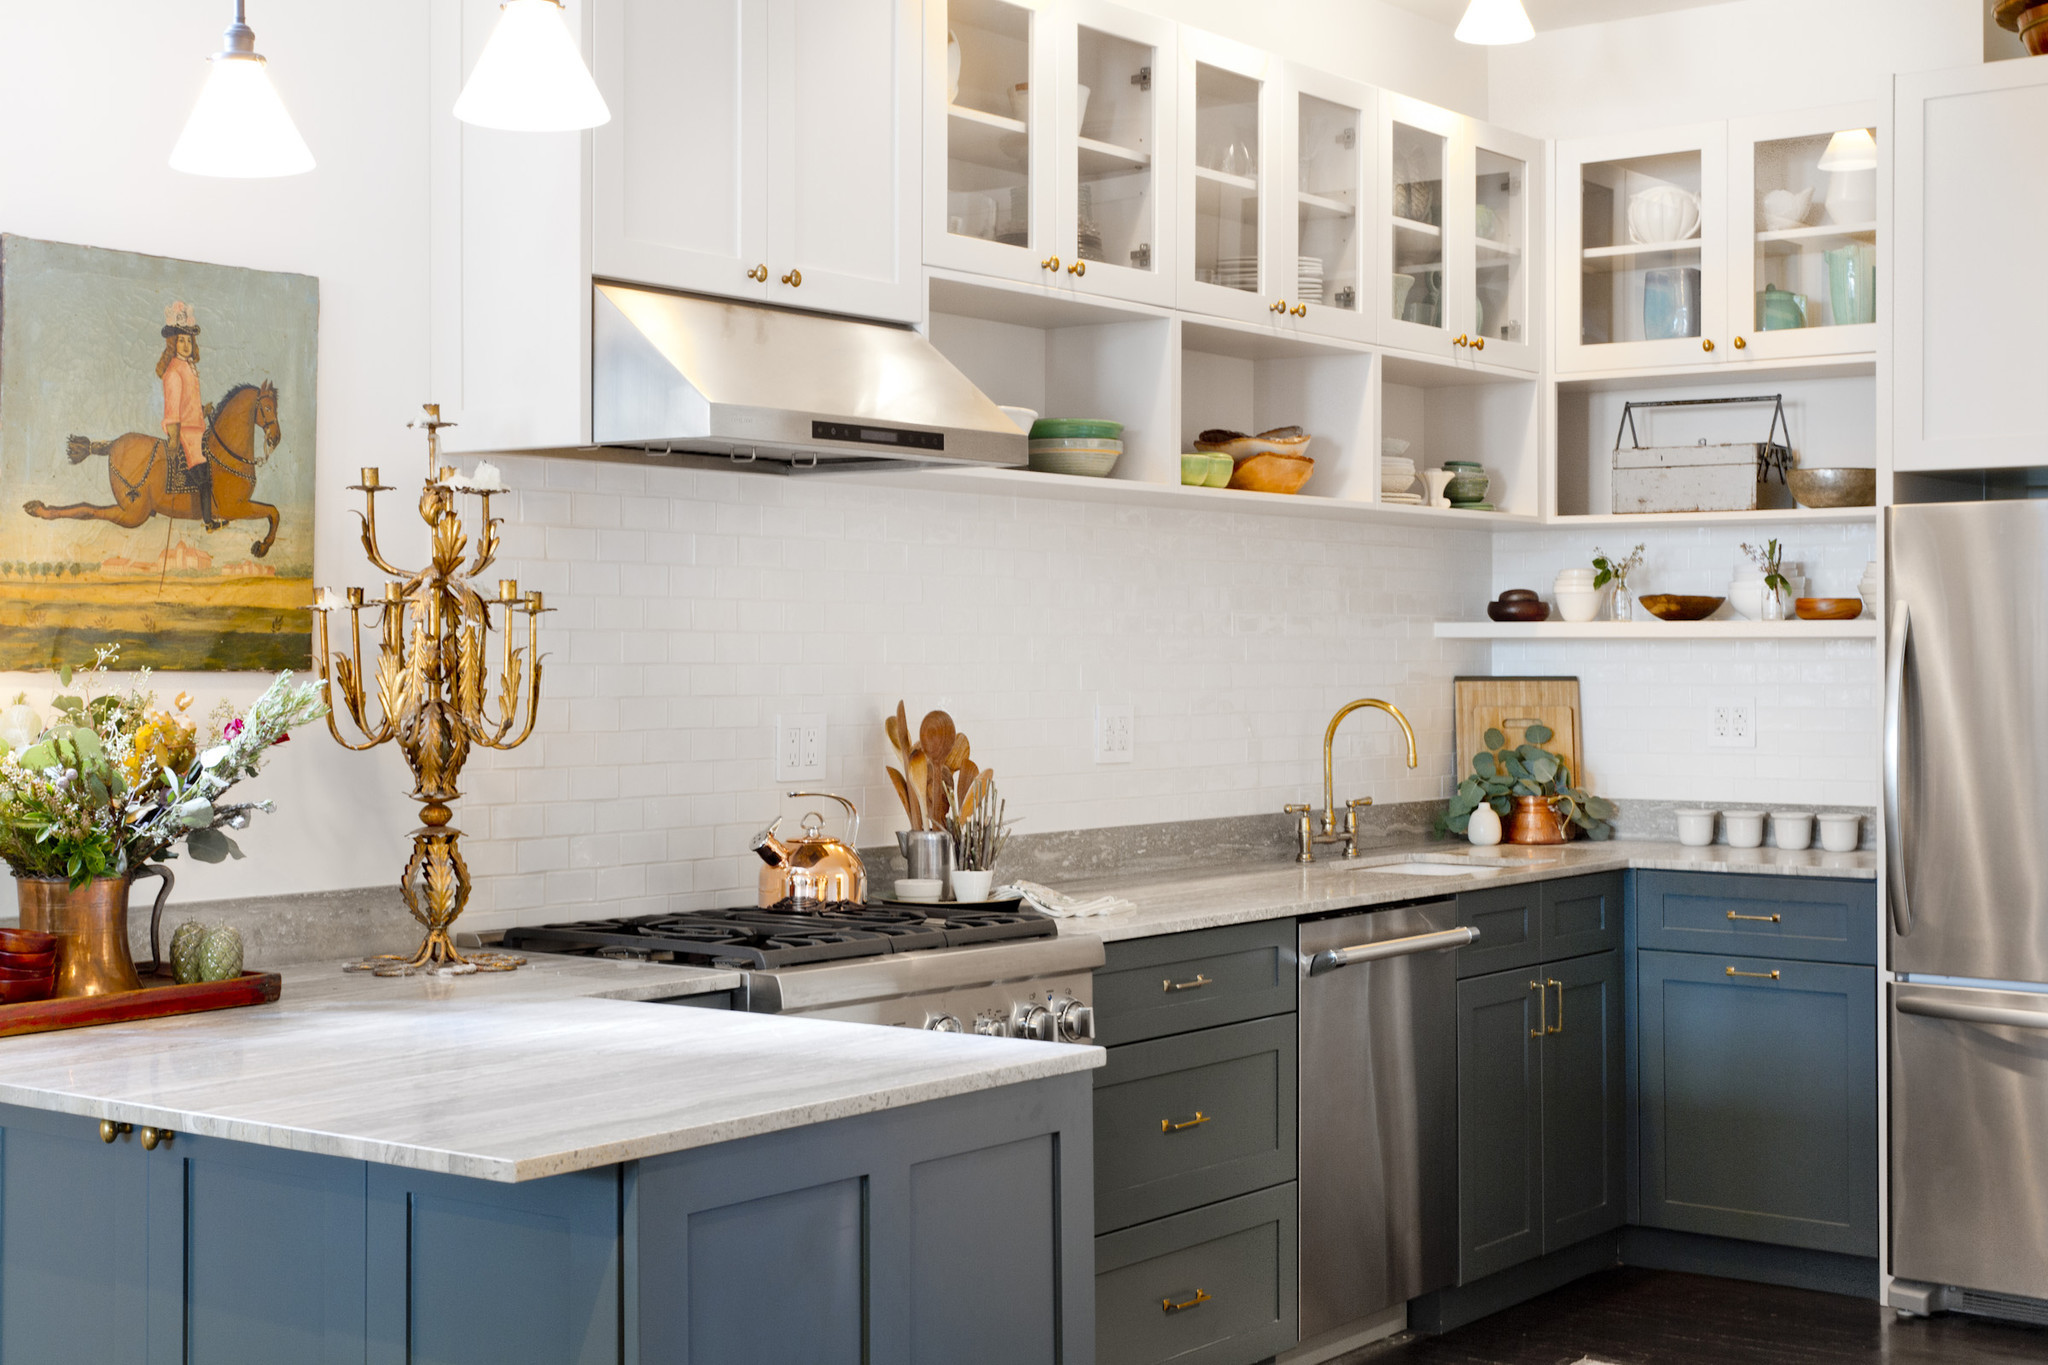 18 home decor and design trends we39ll be watching in 2018 for Kitchen cabinet trends 2018 combined with navy blue and white wall art